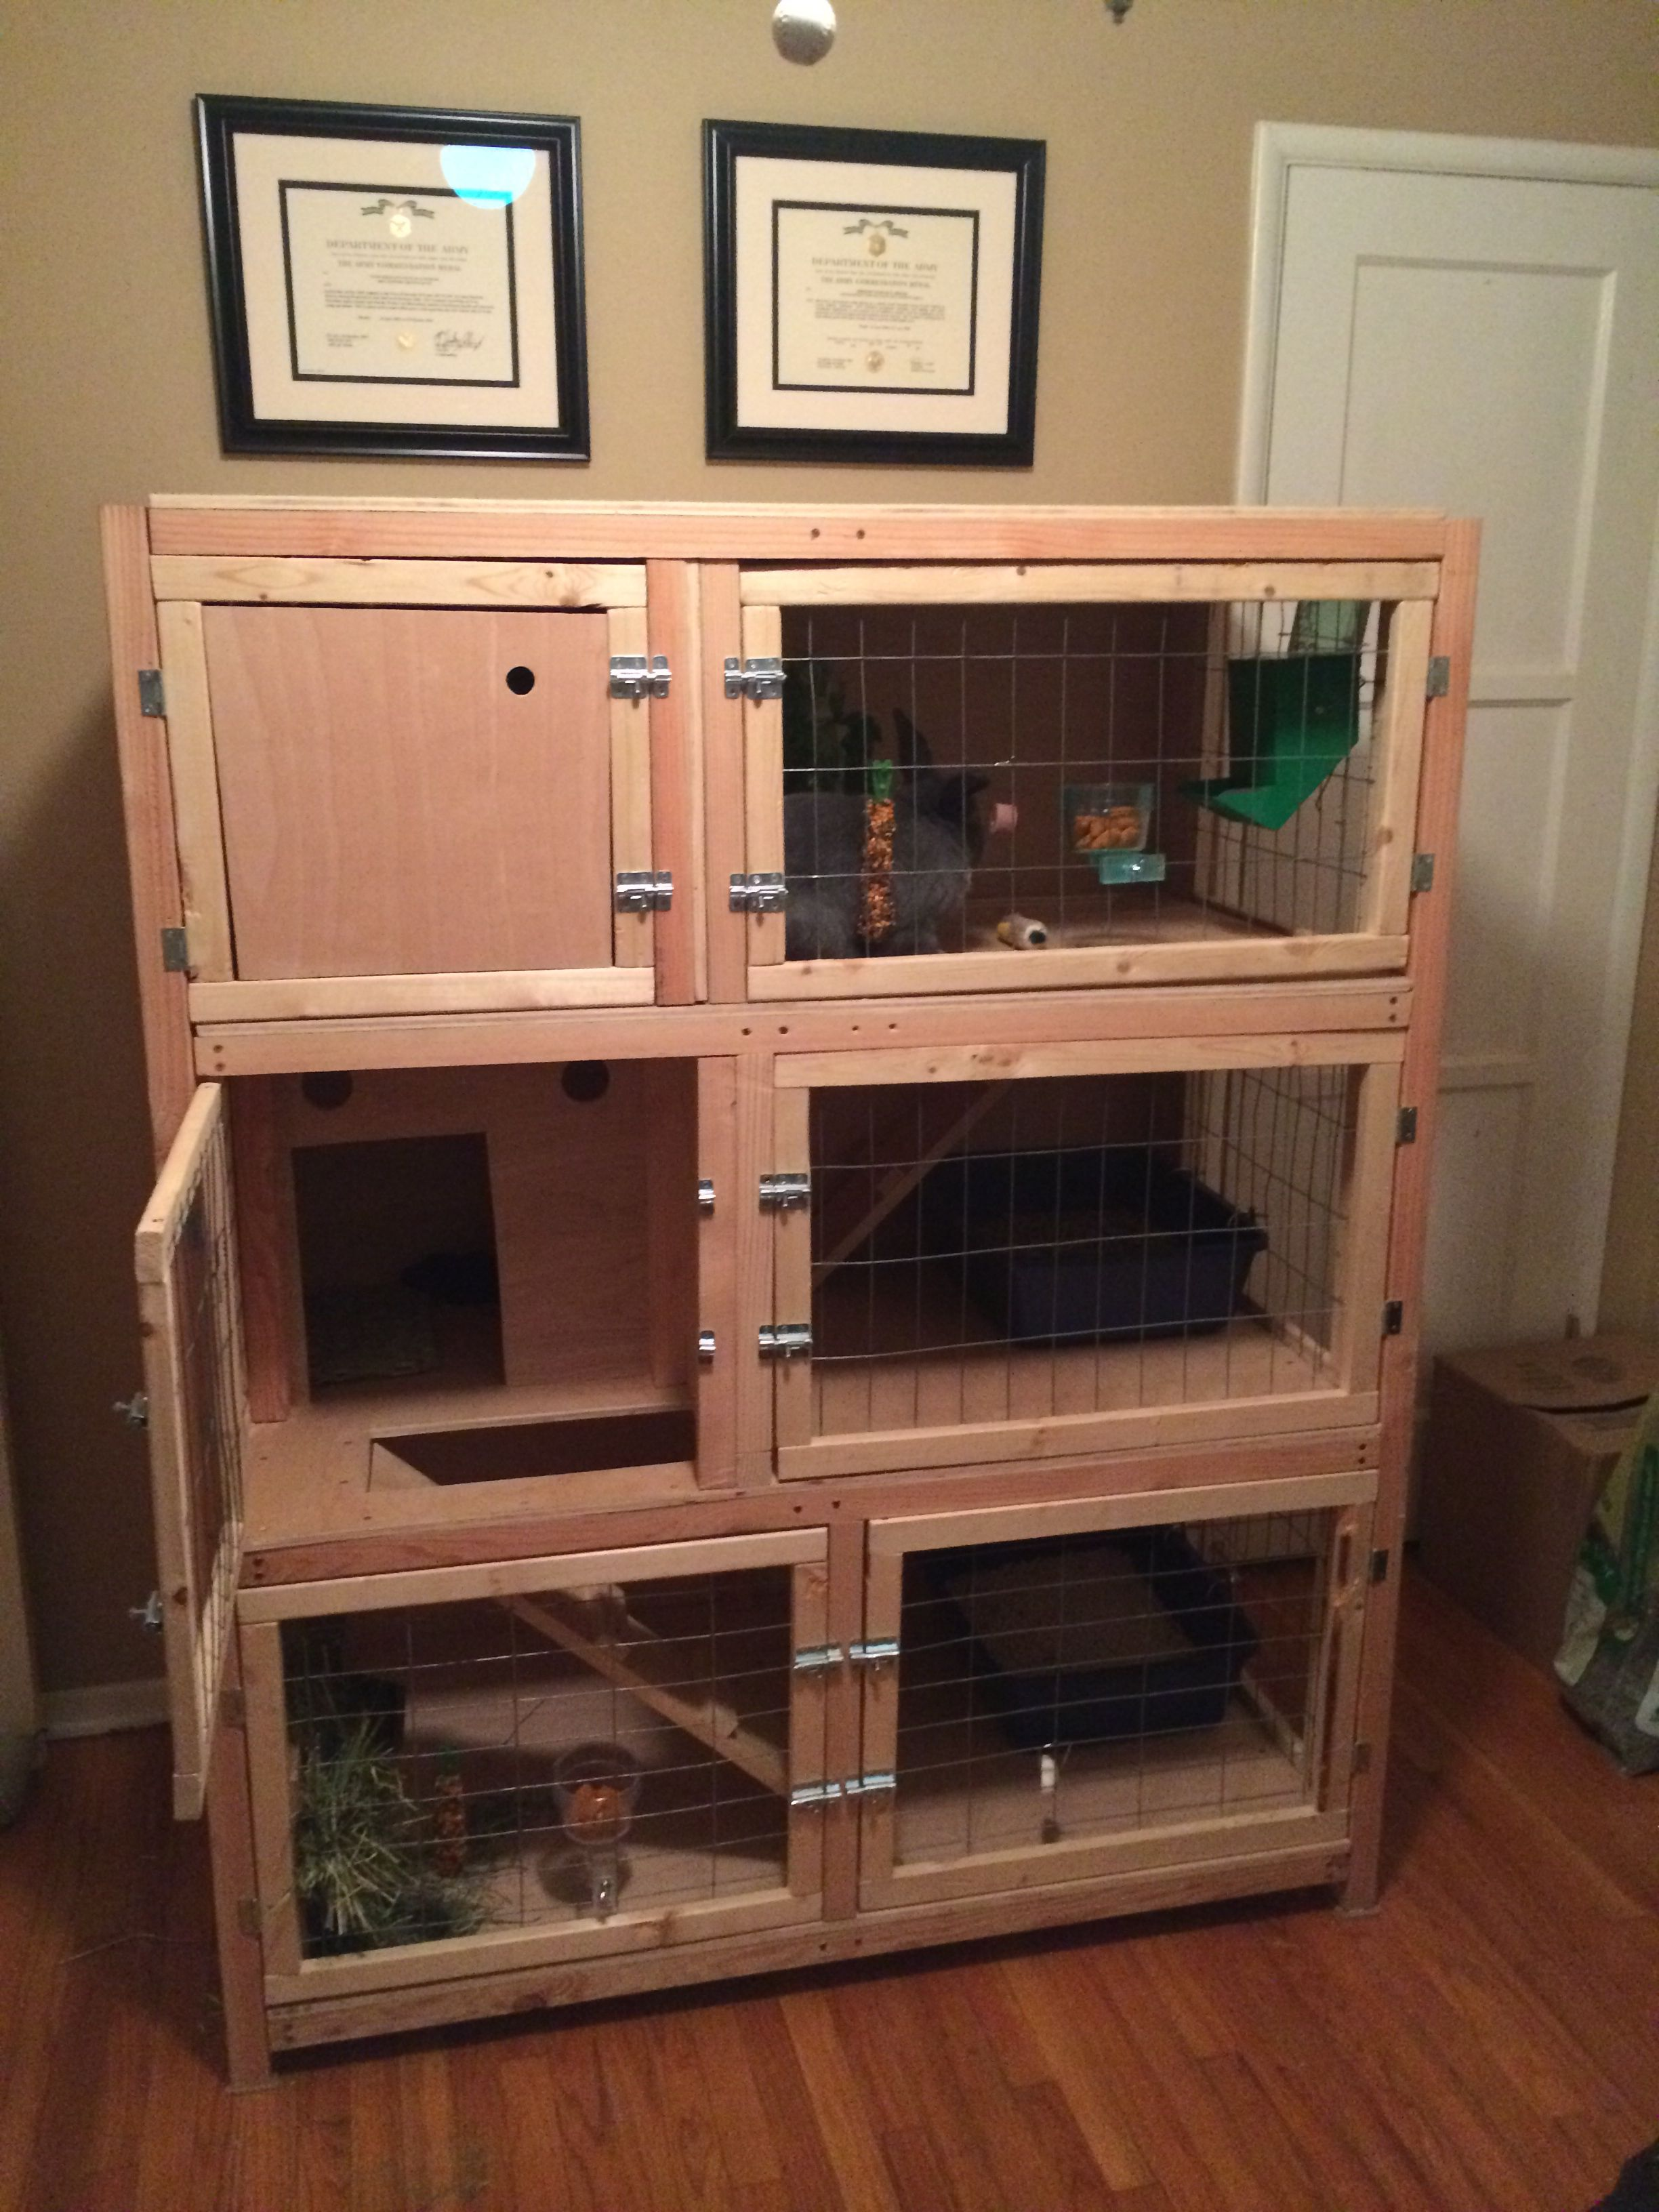 Diy Cage For Rabbit Homemade Wooden Three Story Rabbit Hutch For Multiple